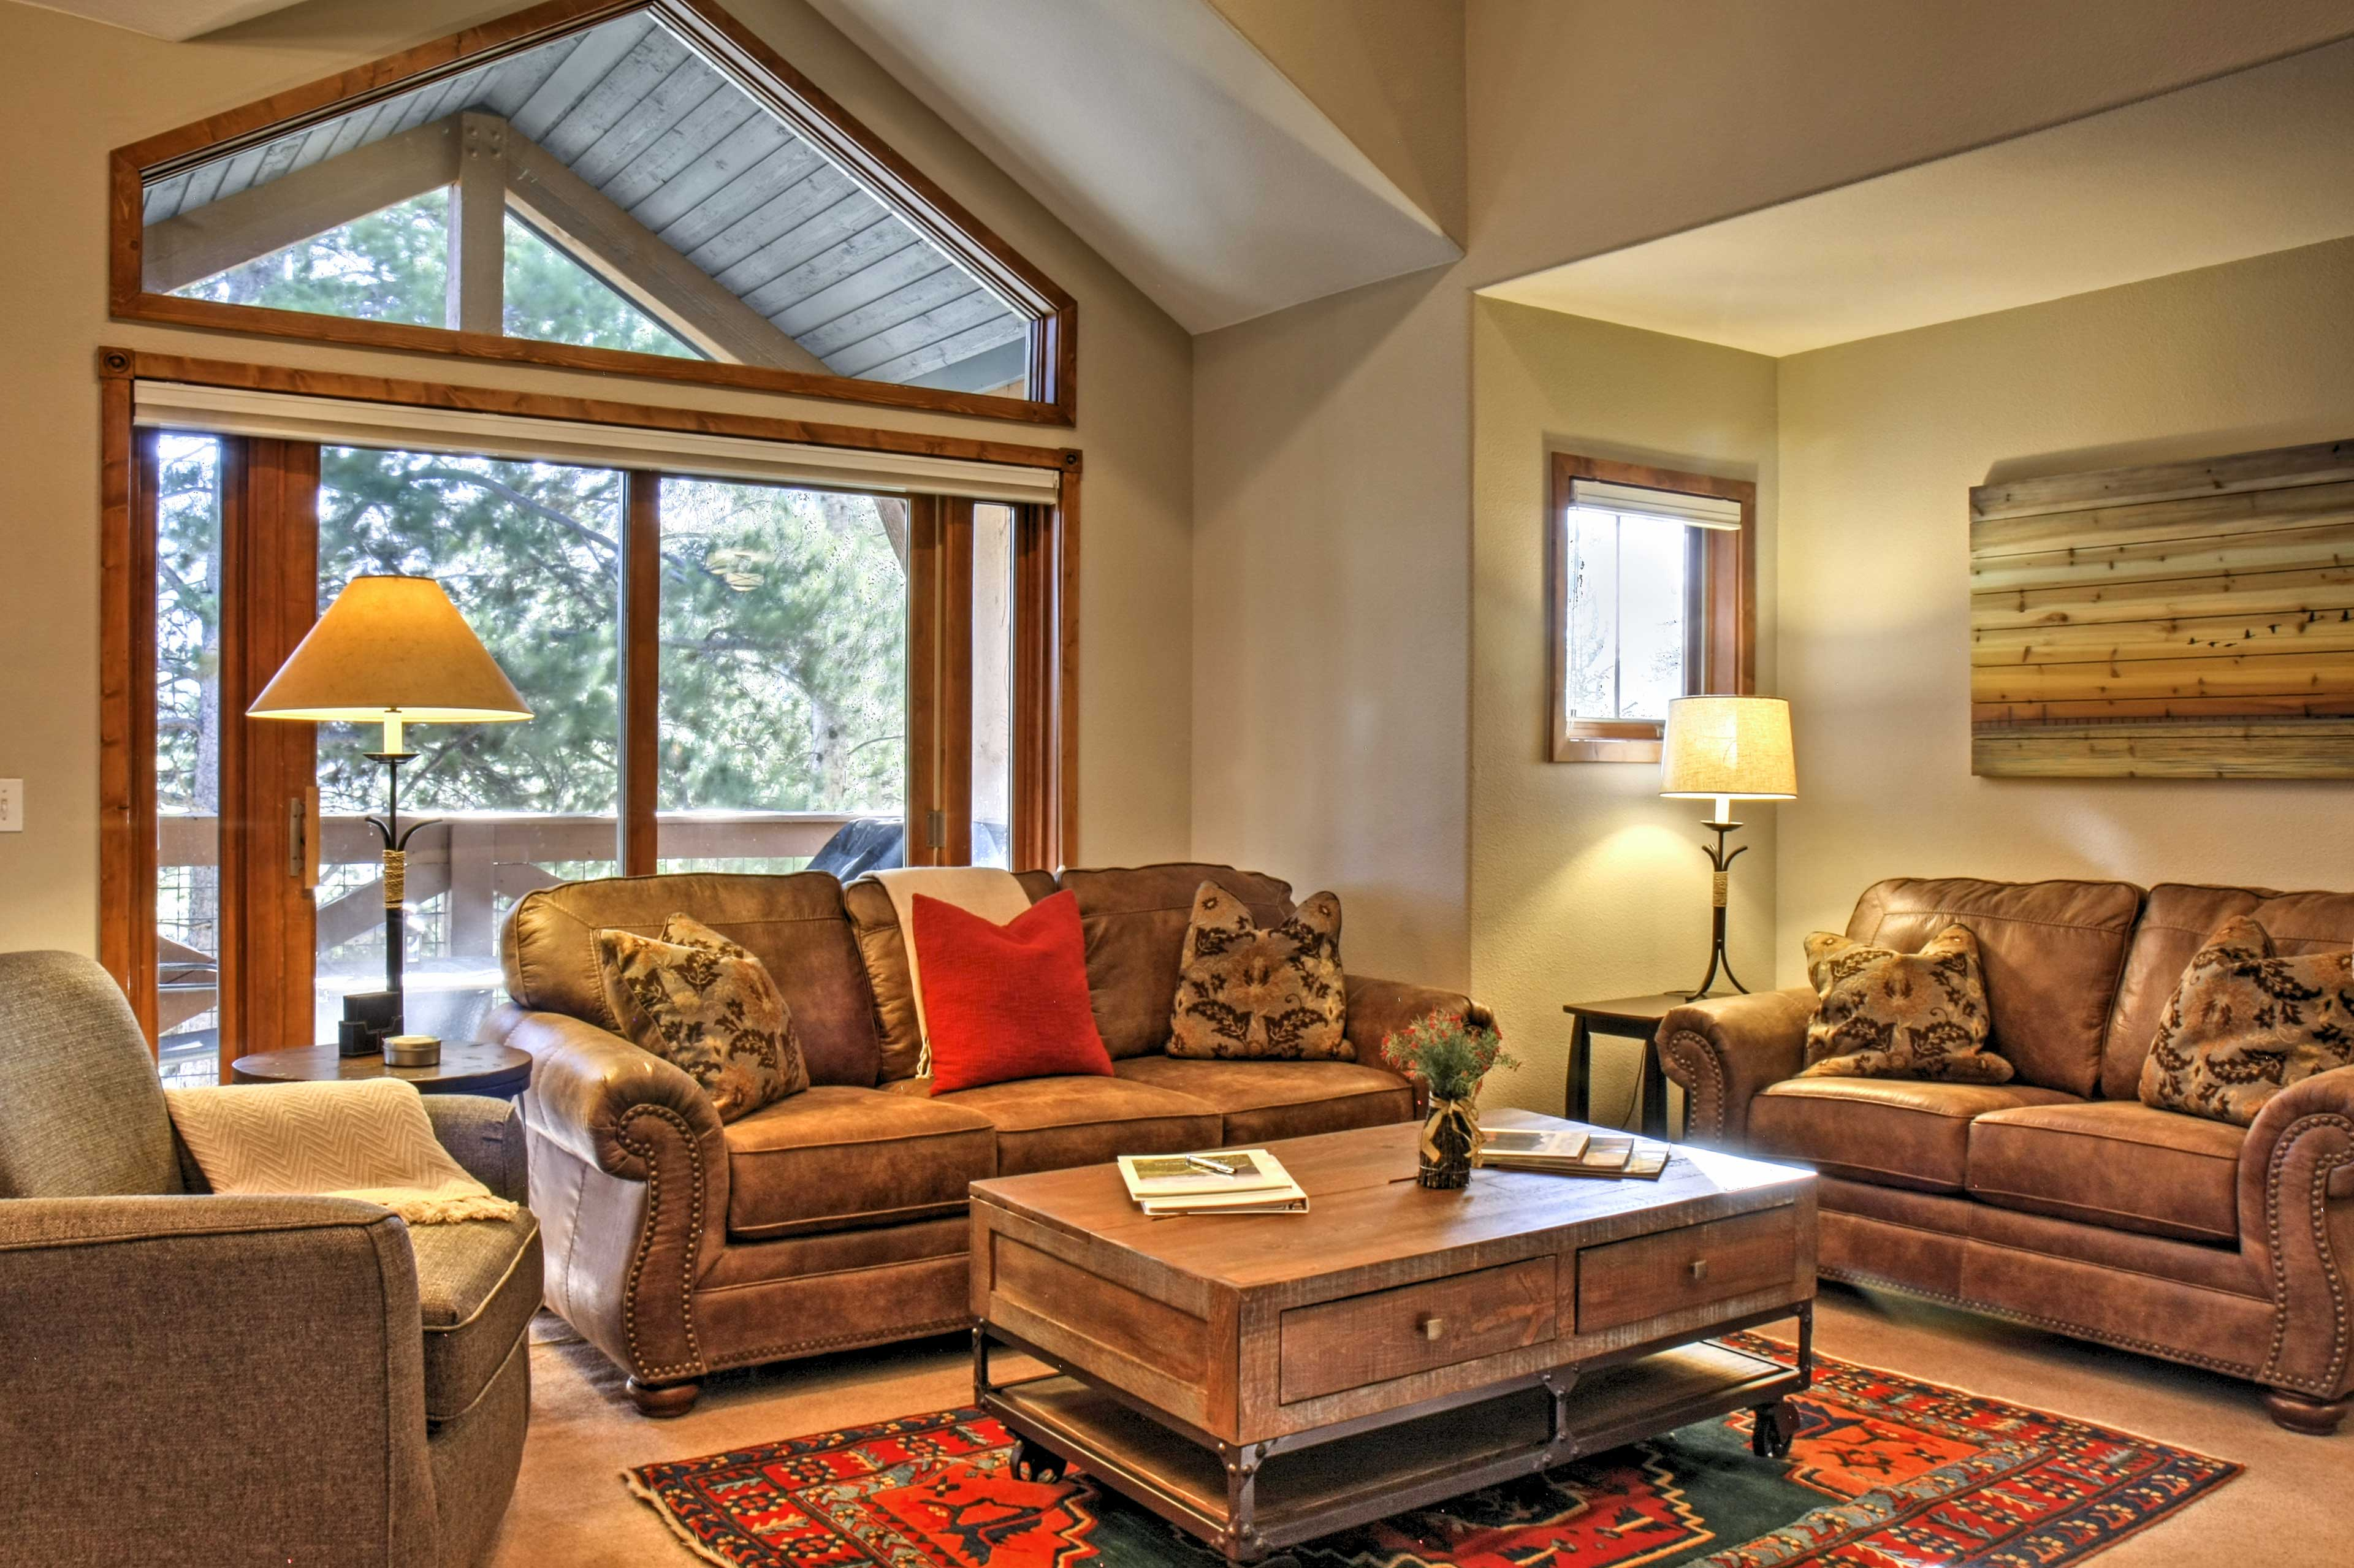 Make yourself at home in this warm living area boasting a Smart TV & fireplace!